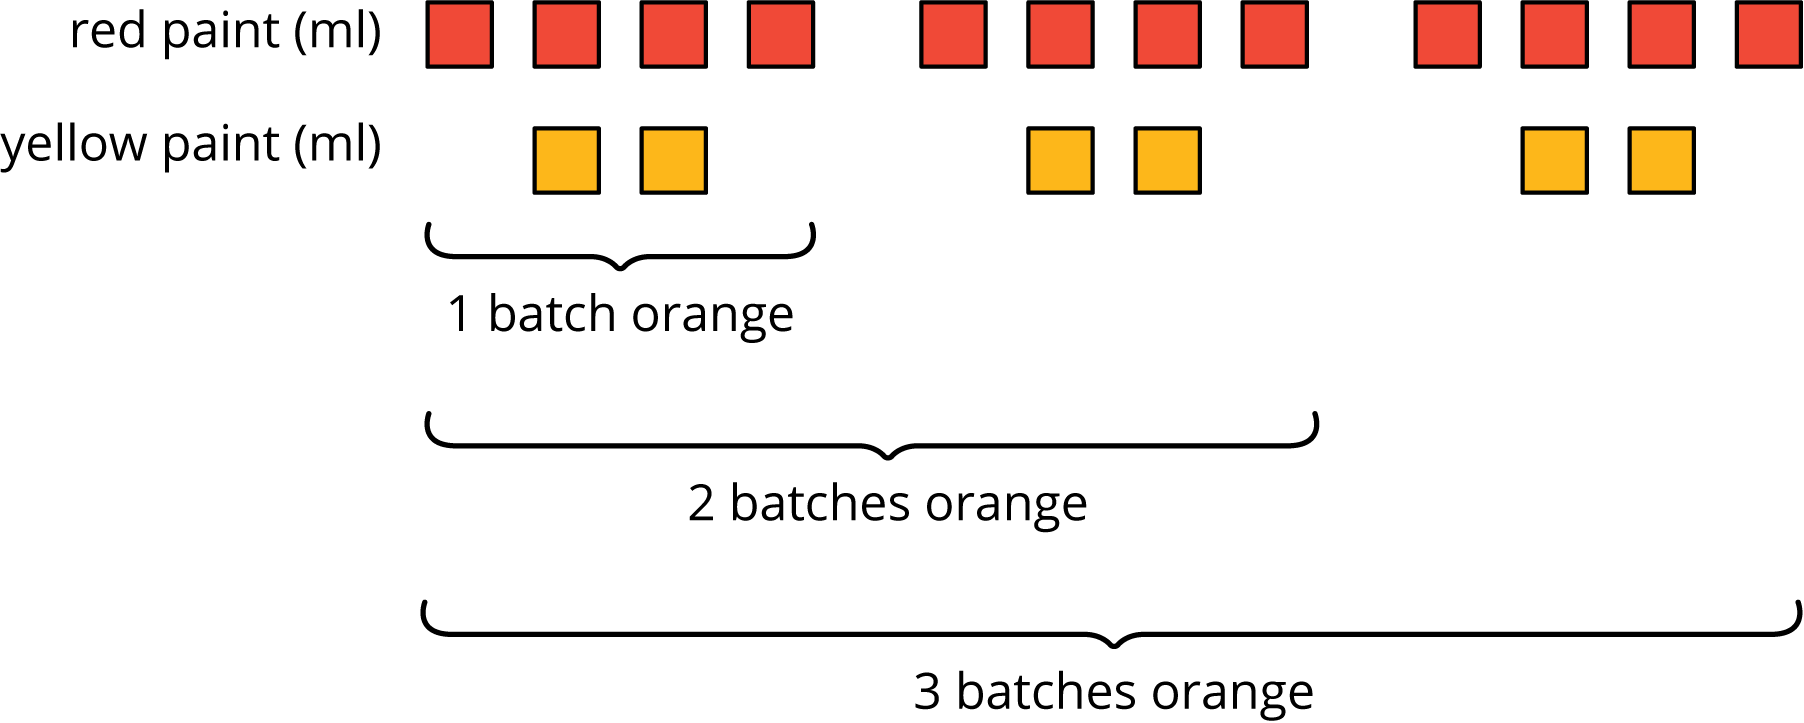 """A discrete diagram that contain red and yellow squares. The top row is labeled ""red paint, in ml"" and contain 12 red squares that are grouped by 4's. The bottom row is labeled ""yellow paint, in ml"" and contain 6 yellow squares grouped by 2's.  There is a brace that contains 4 red squares and 2 yellow squares labeled ""1 batch orange."" A second brace contains 8 red squares and 4 yellow squares labeled ""2 batches orange."" A third brace contains 12 red squares and 6 yellow squares labeled ""3 batches orange."""